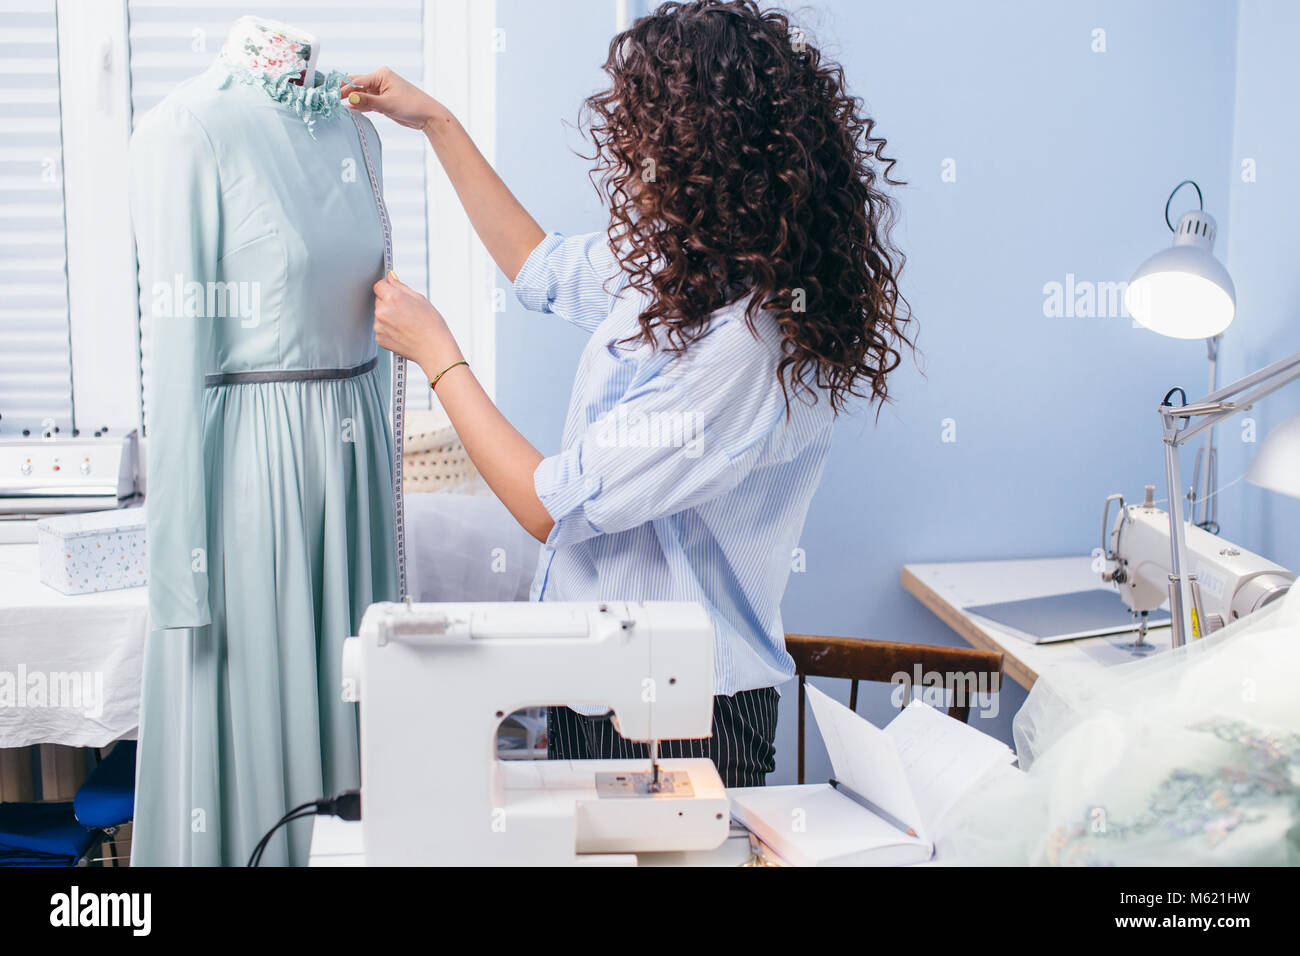 process of measuring accuralty measuring garment on tailor's dummy - Stock Image